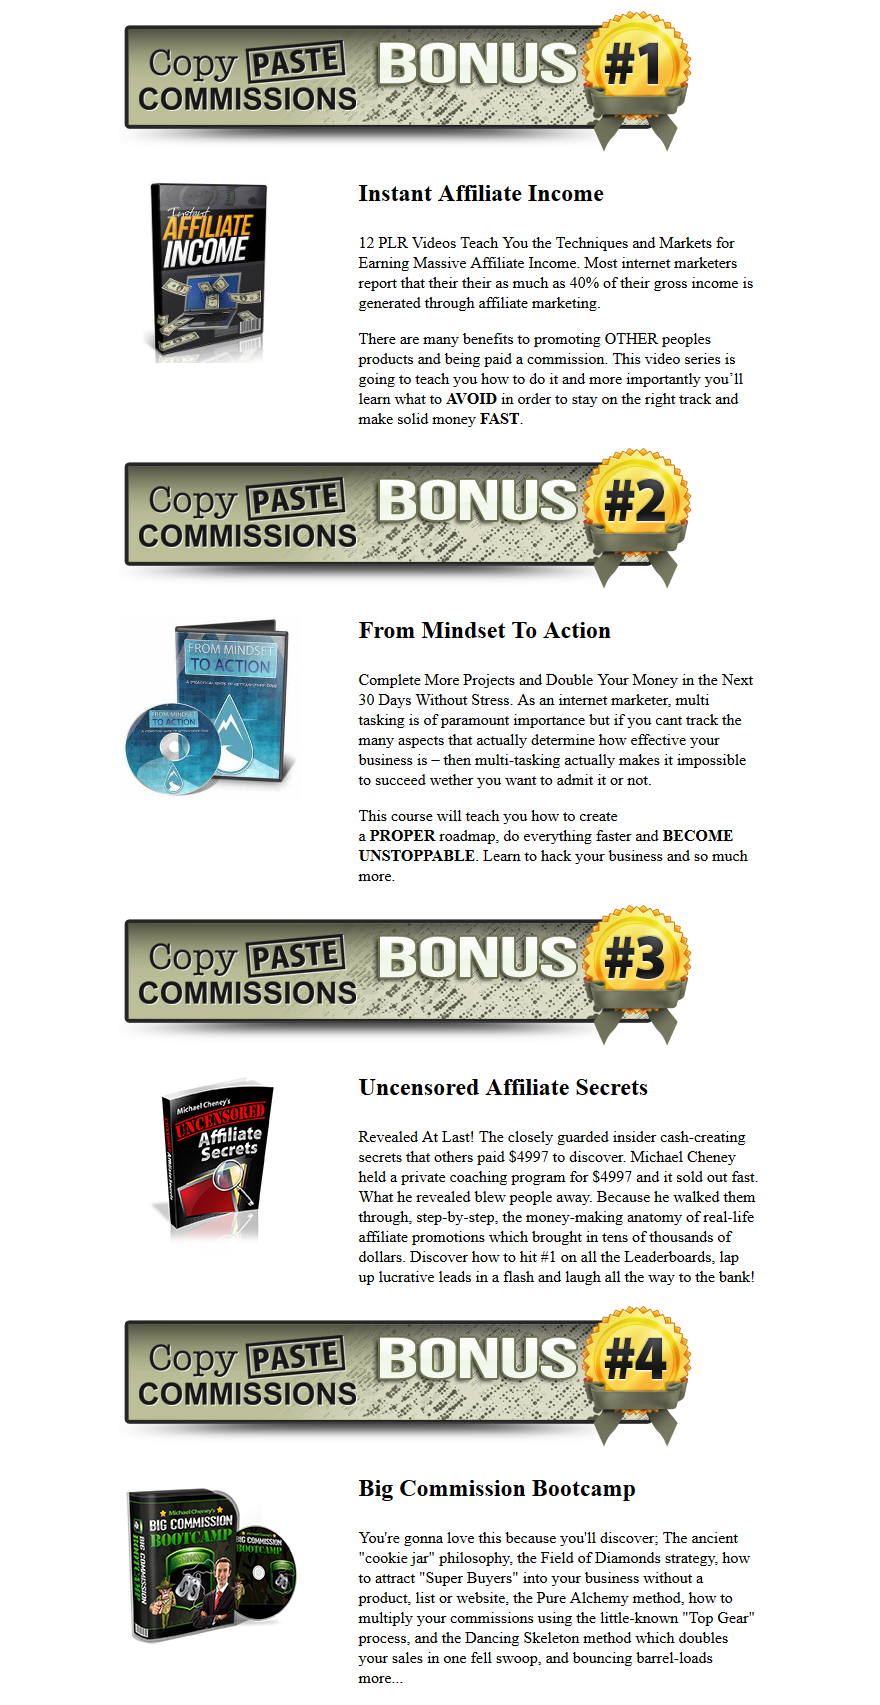 Copy Paste Commissions Bonuses